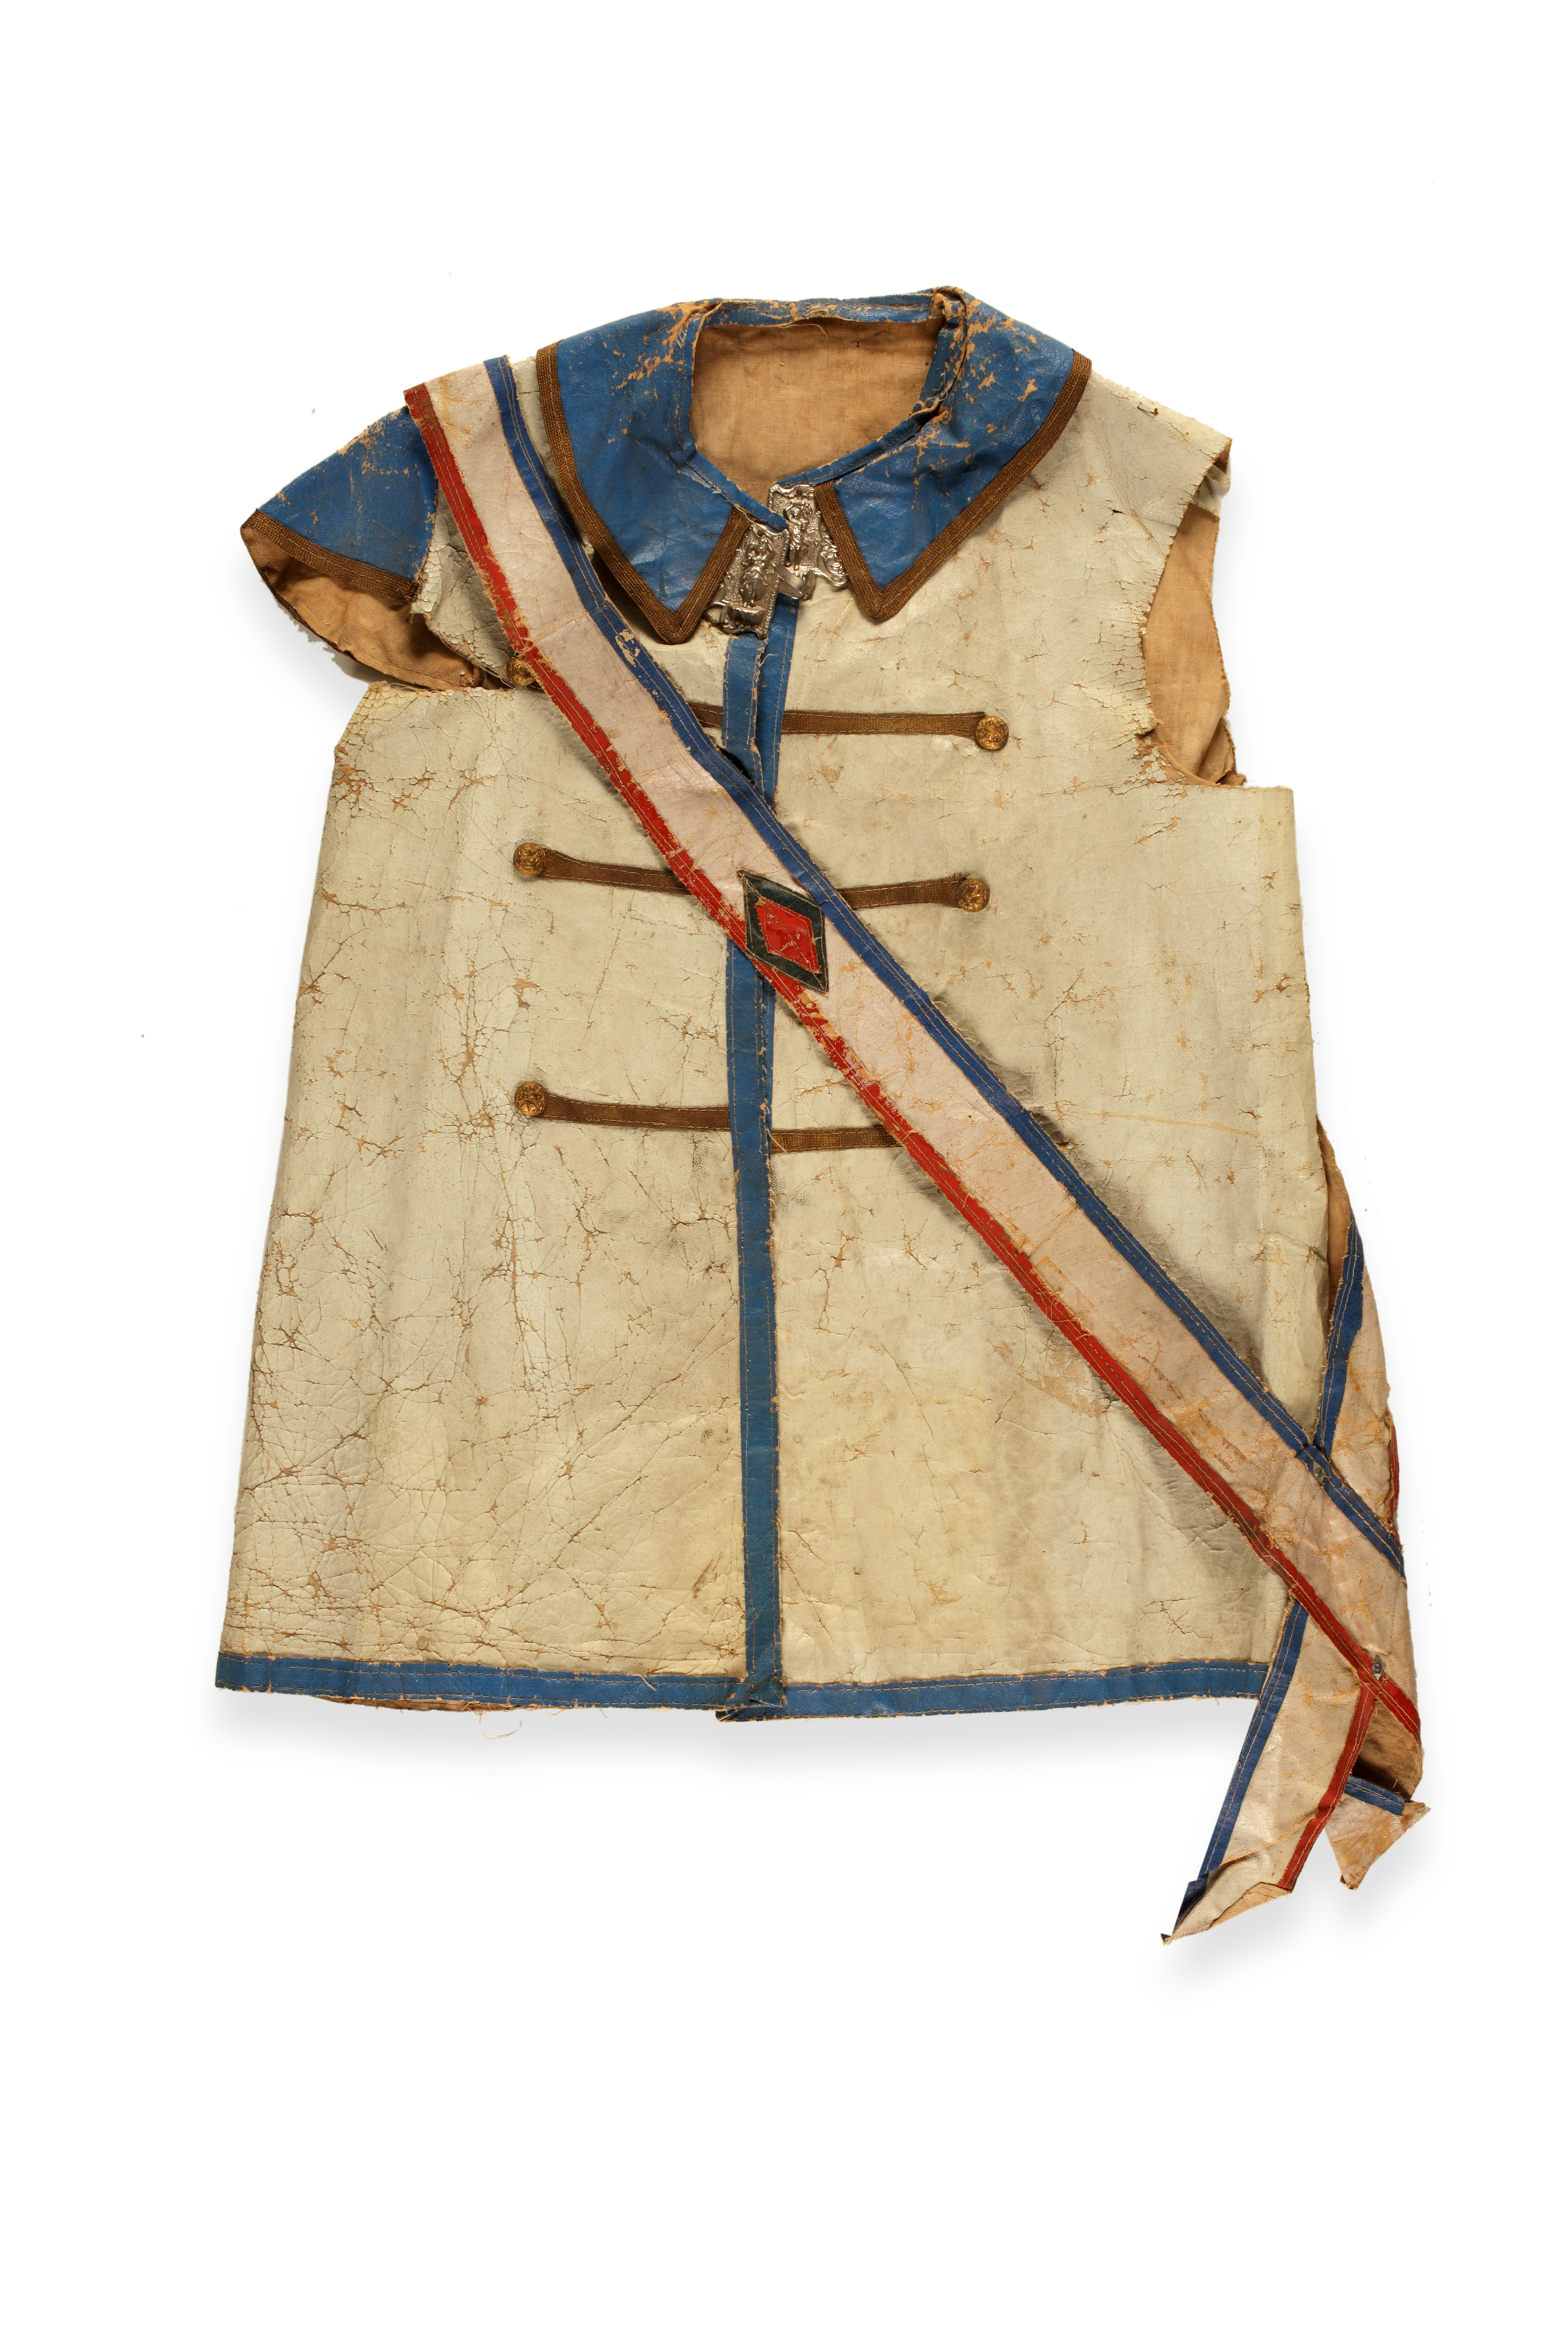 Jacket and sash for 1888 Benjamin Harrison campaign